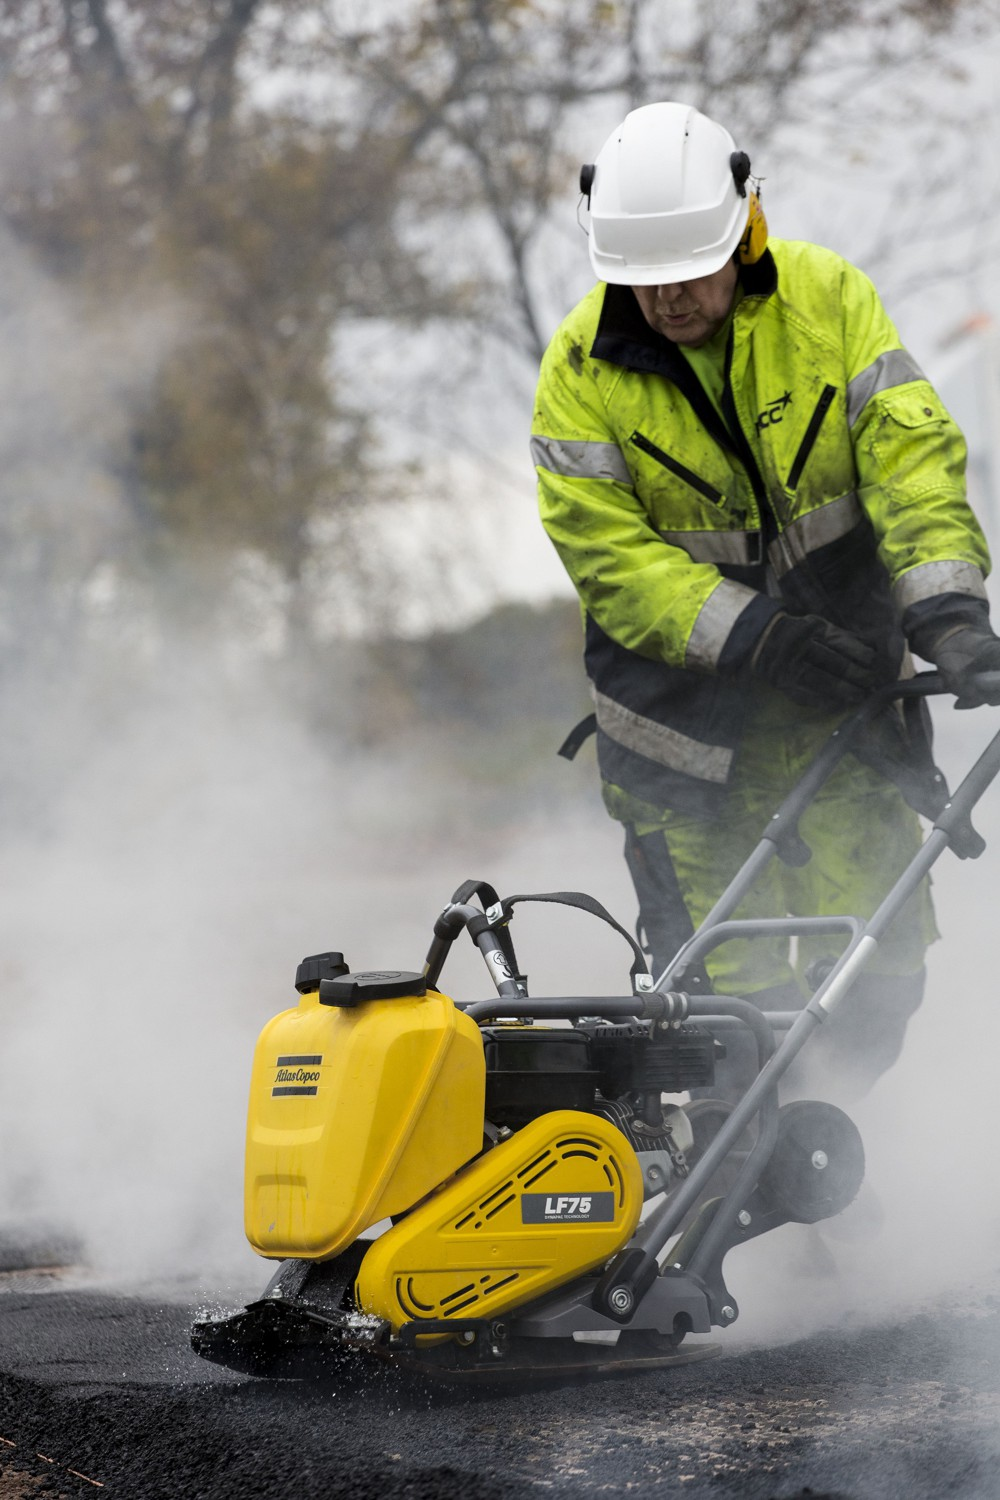 Atlas Copco to divest concrete and compaction business to Husqvarna Group